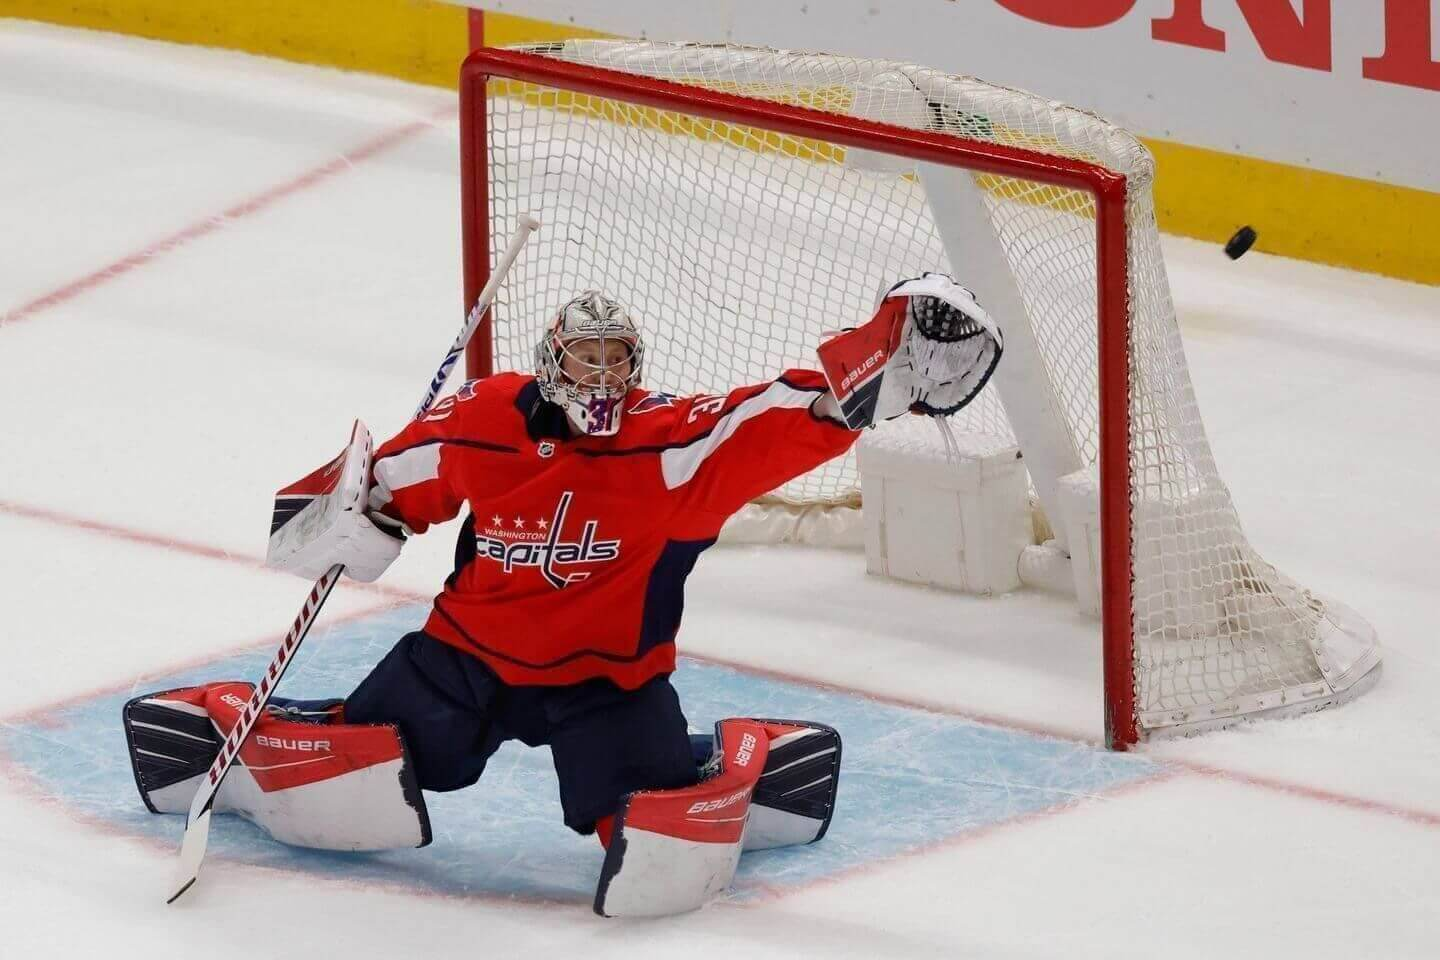 NHL Stanley Cup playoffs: Live Capitals beat Bruins in overtime, Nic Dowd scores winner, goalie Craig Anderson gets win